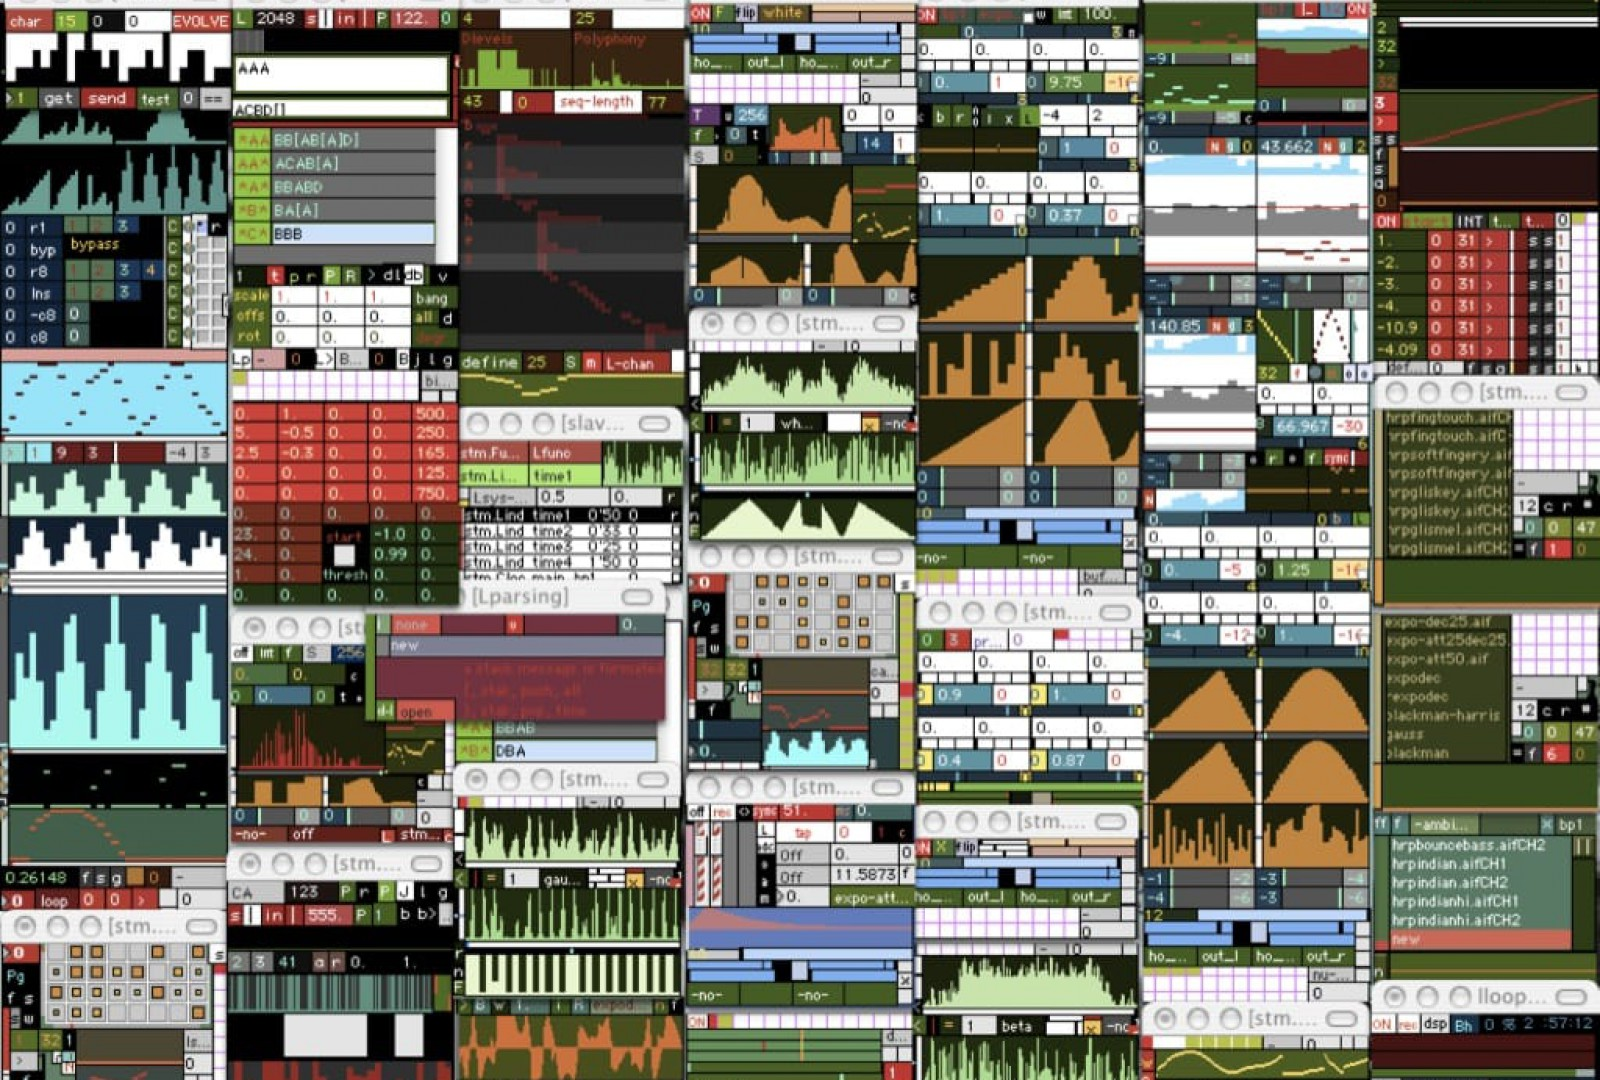 stm.modular (software) by Stelios Manousakis – most modules